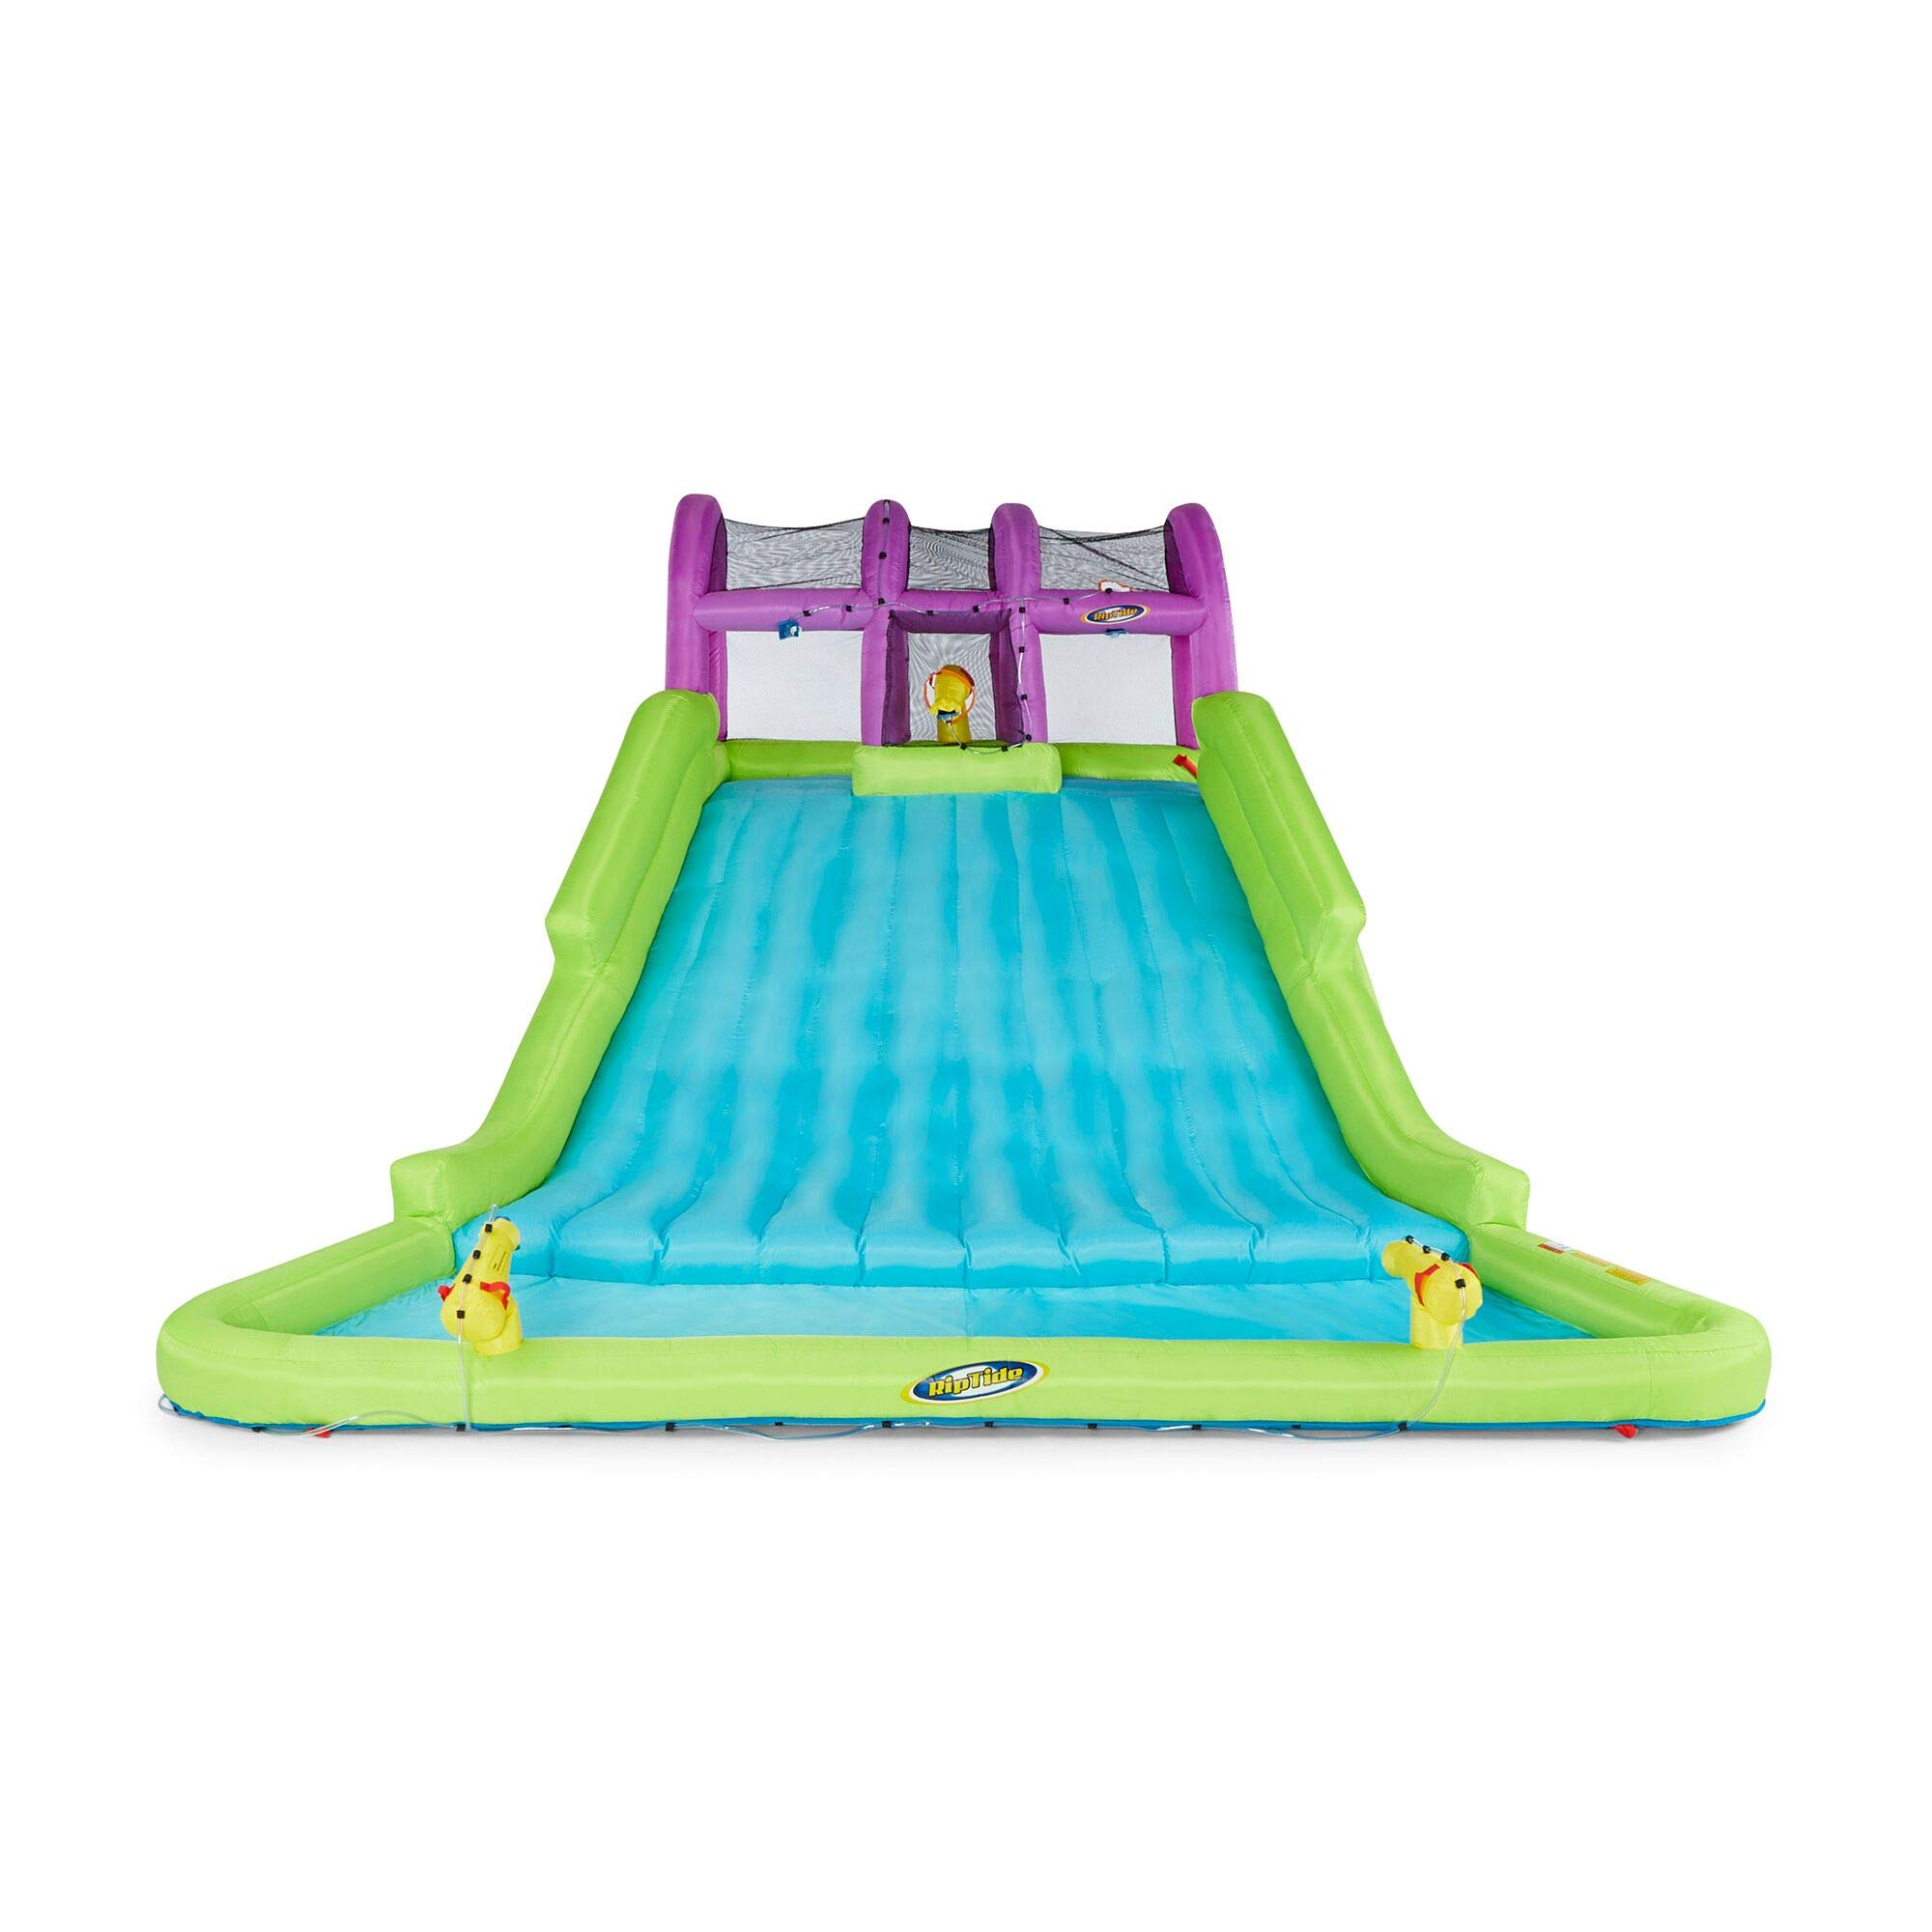 Kahuna Mega Blast Inflatable Backyard Kiddie Pool and Slide Water Park by Kahuna (Image #4)